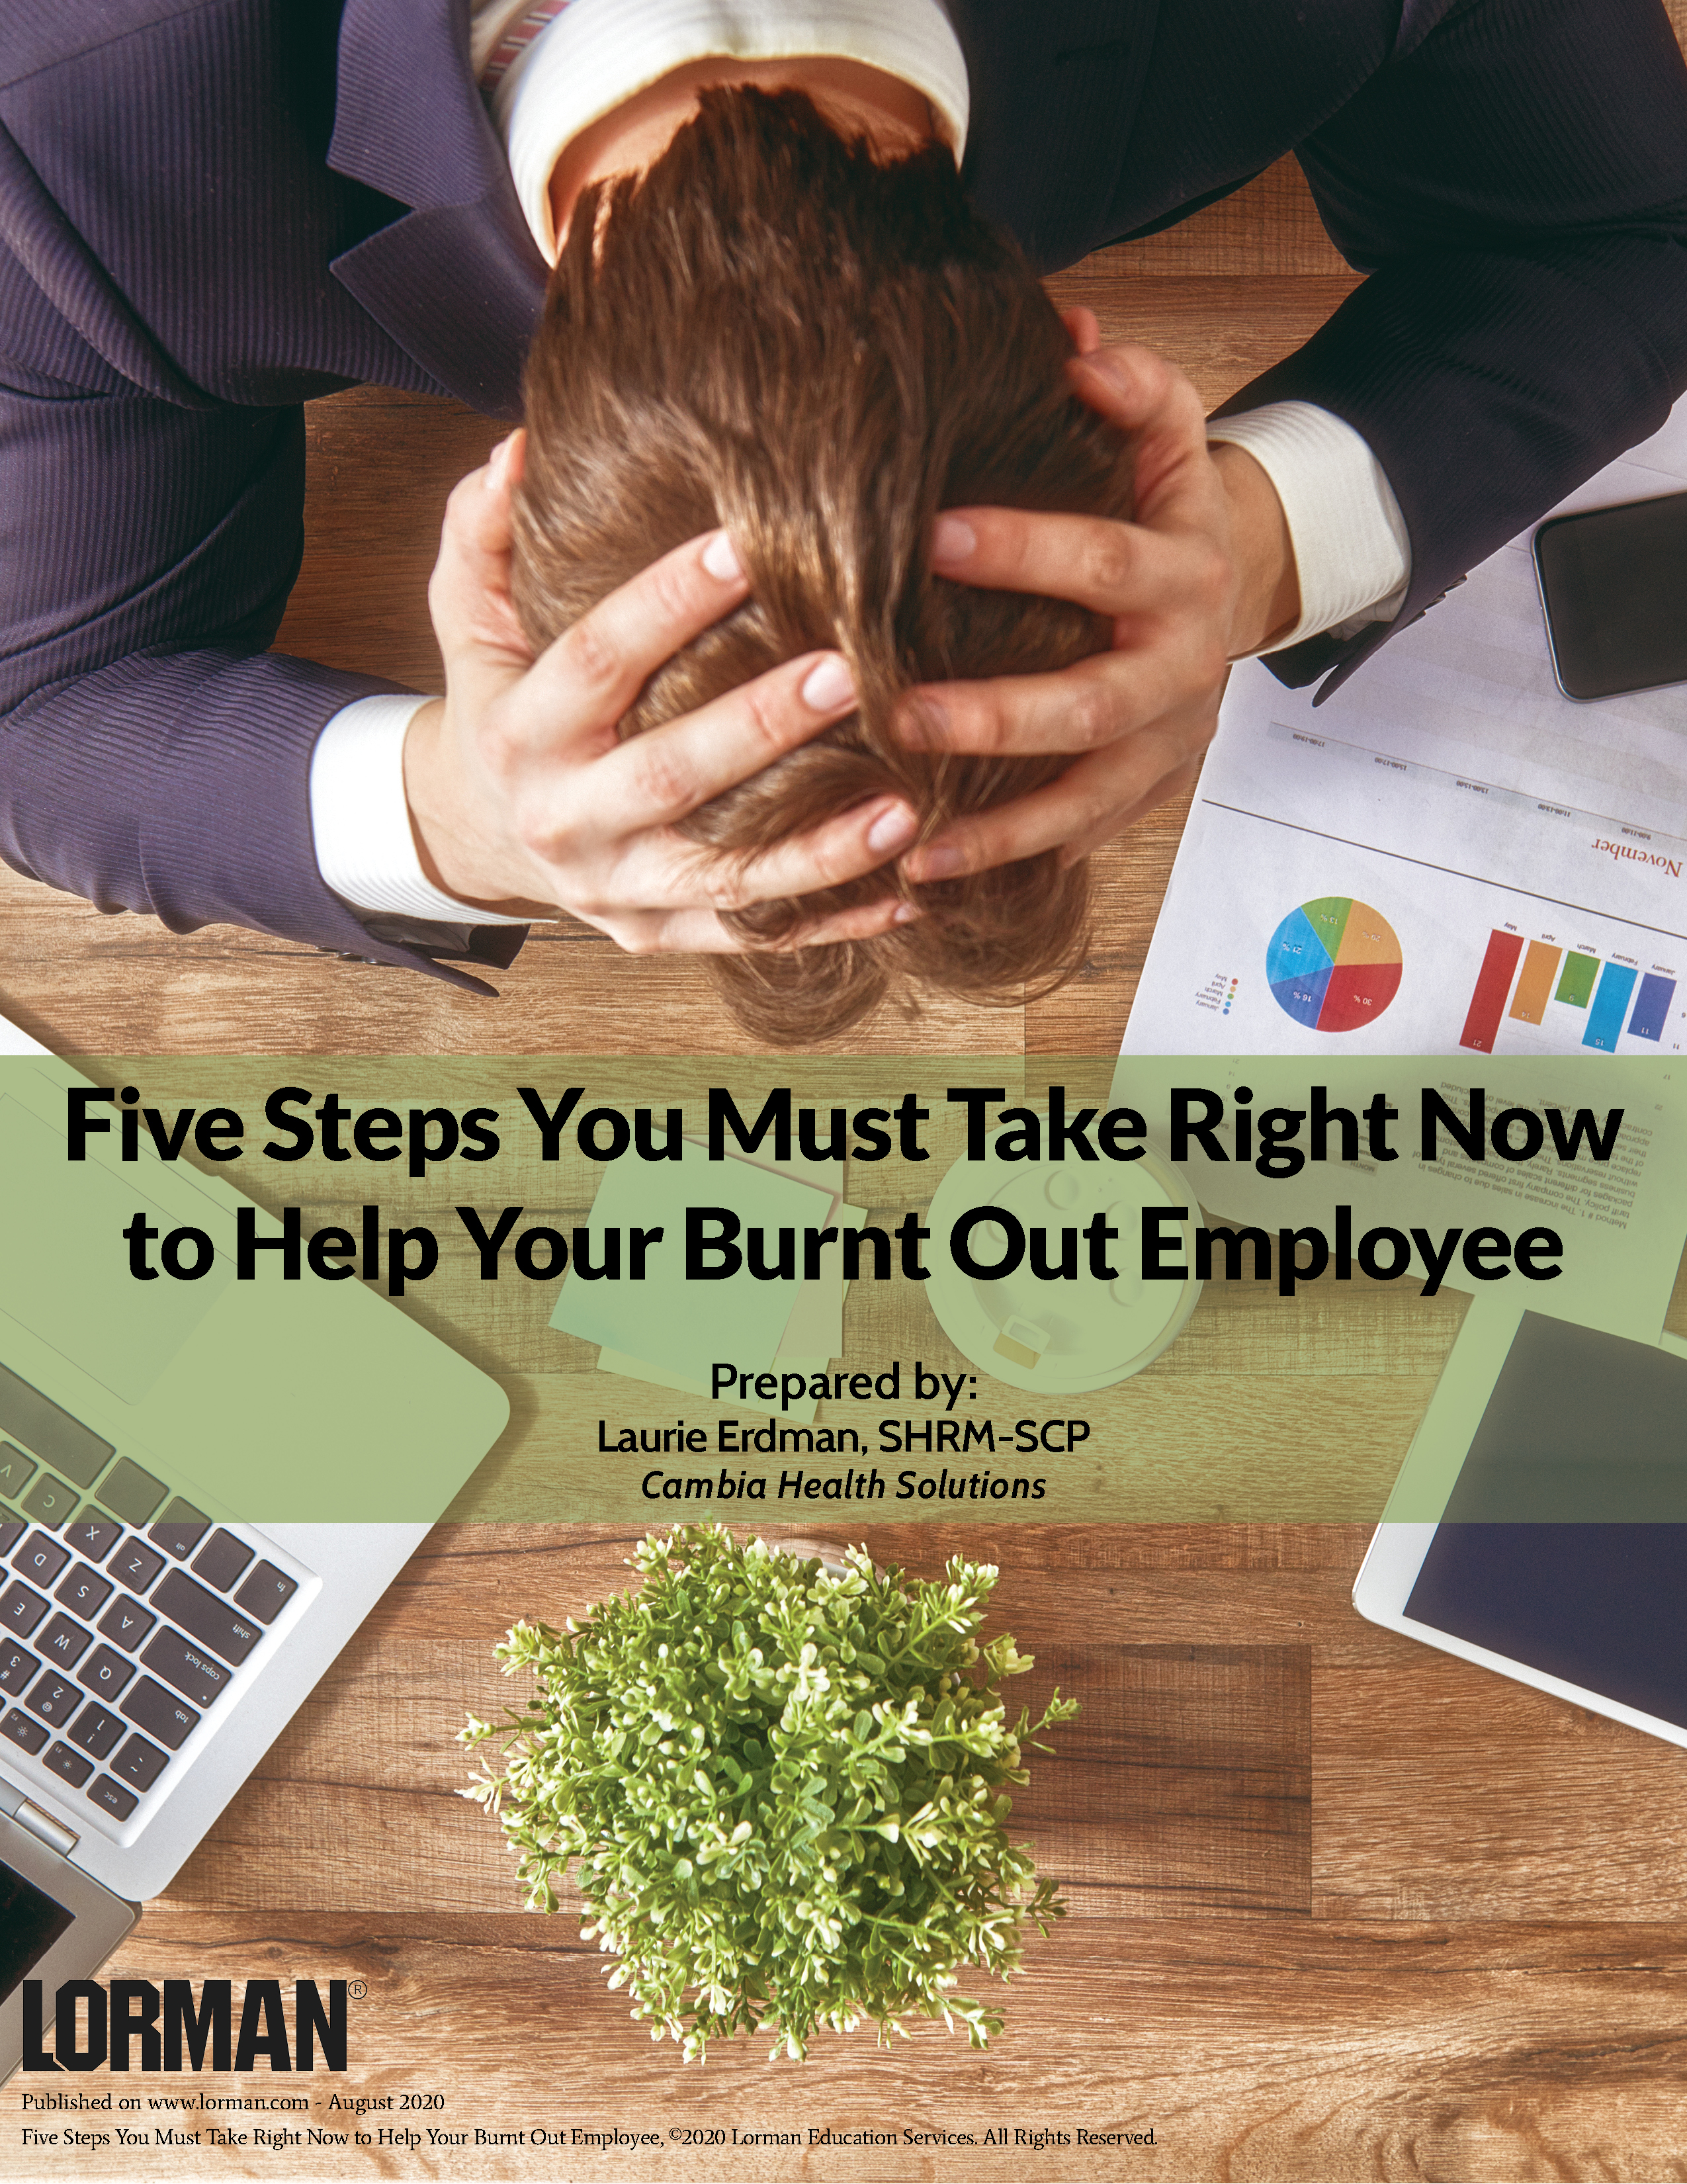 Five Steps You Must Take Right Now to Help Your Burnt Out Employee